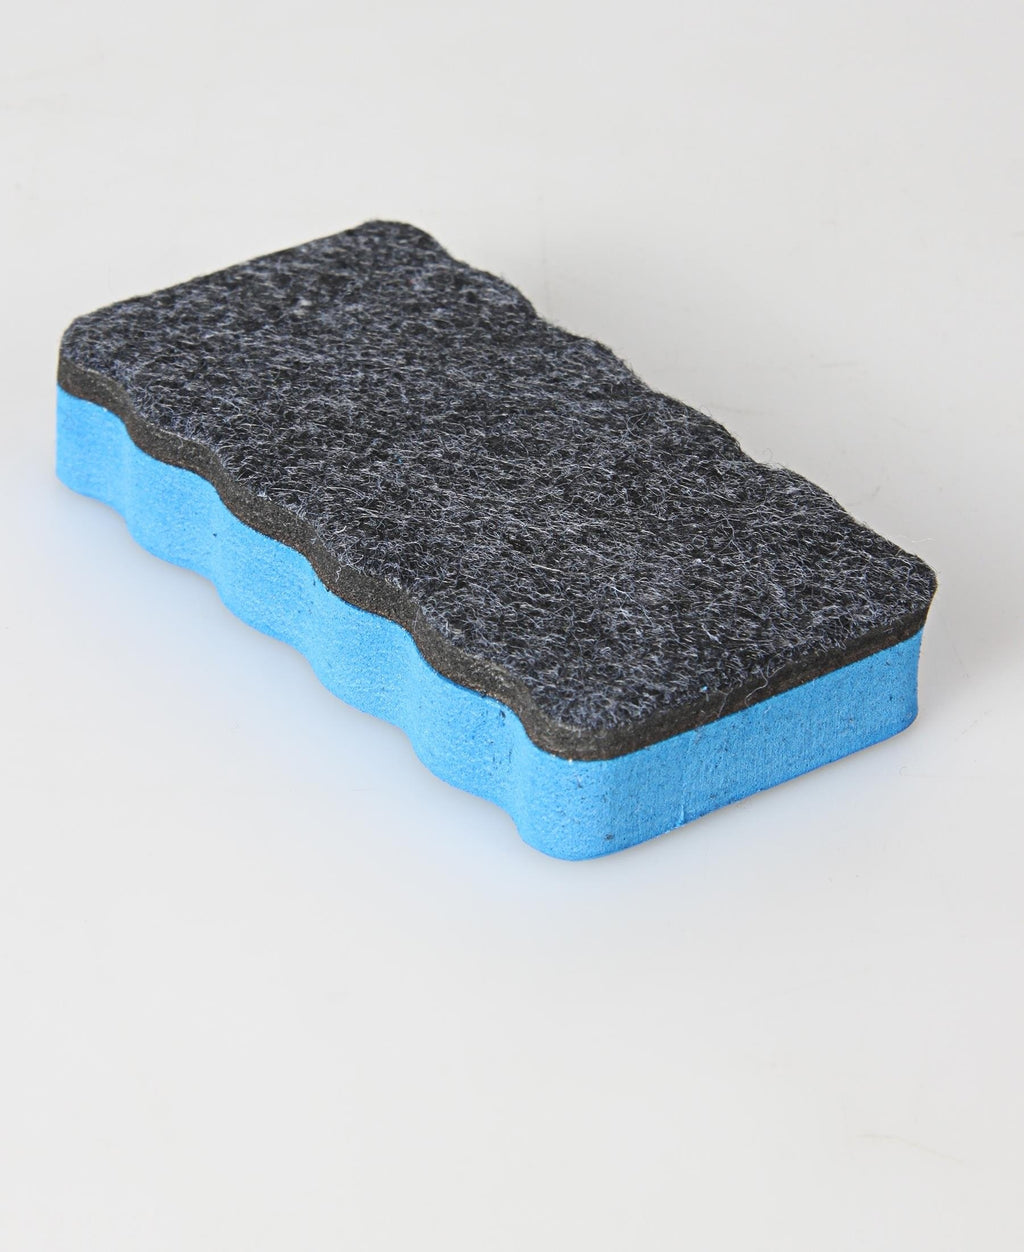 Foska Whiteboard Eraser - Blue